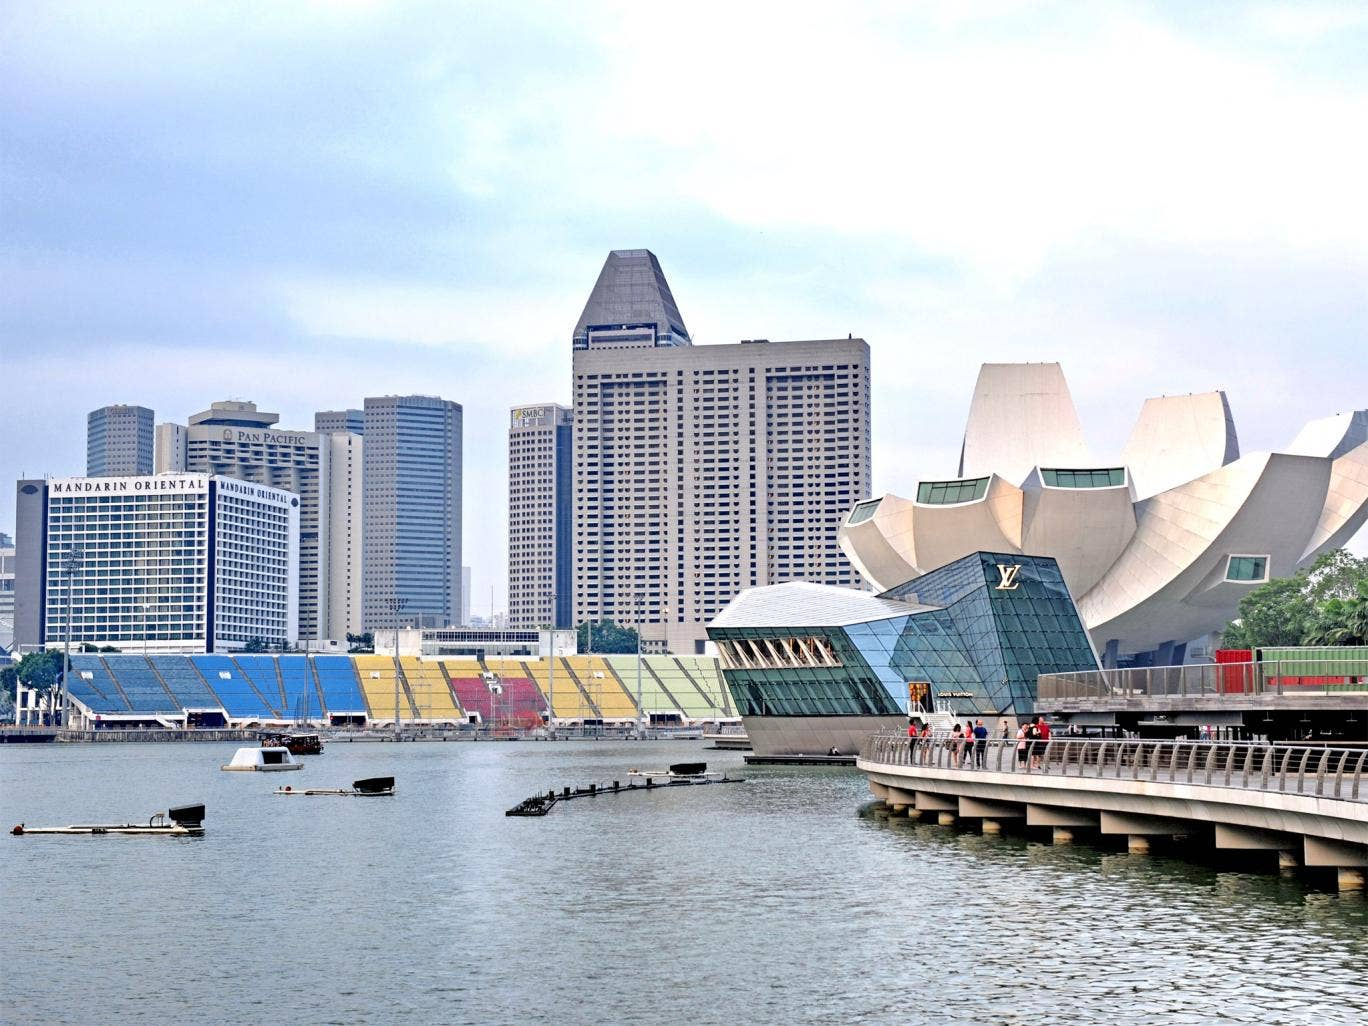 The Marina Bay promenade in Singapore. The arrival of wealthy foreigners in the booming financial centre has helped to drive up prices